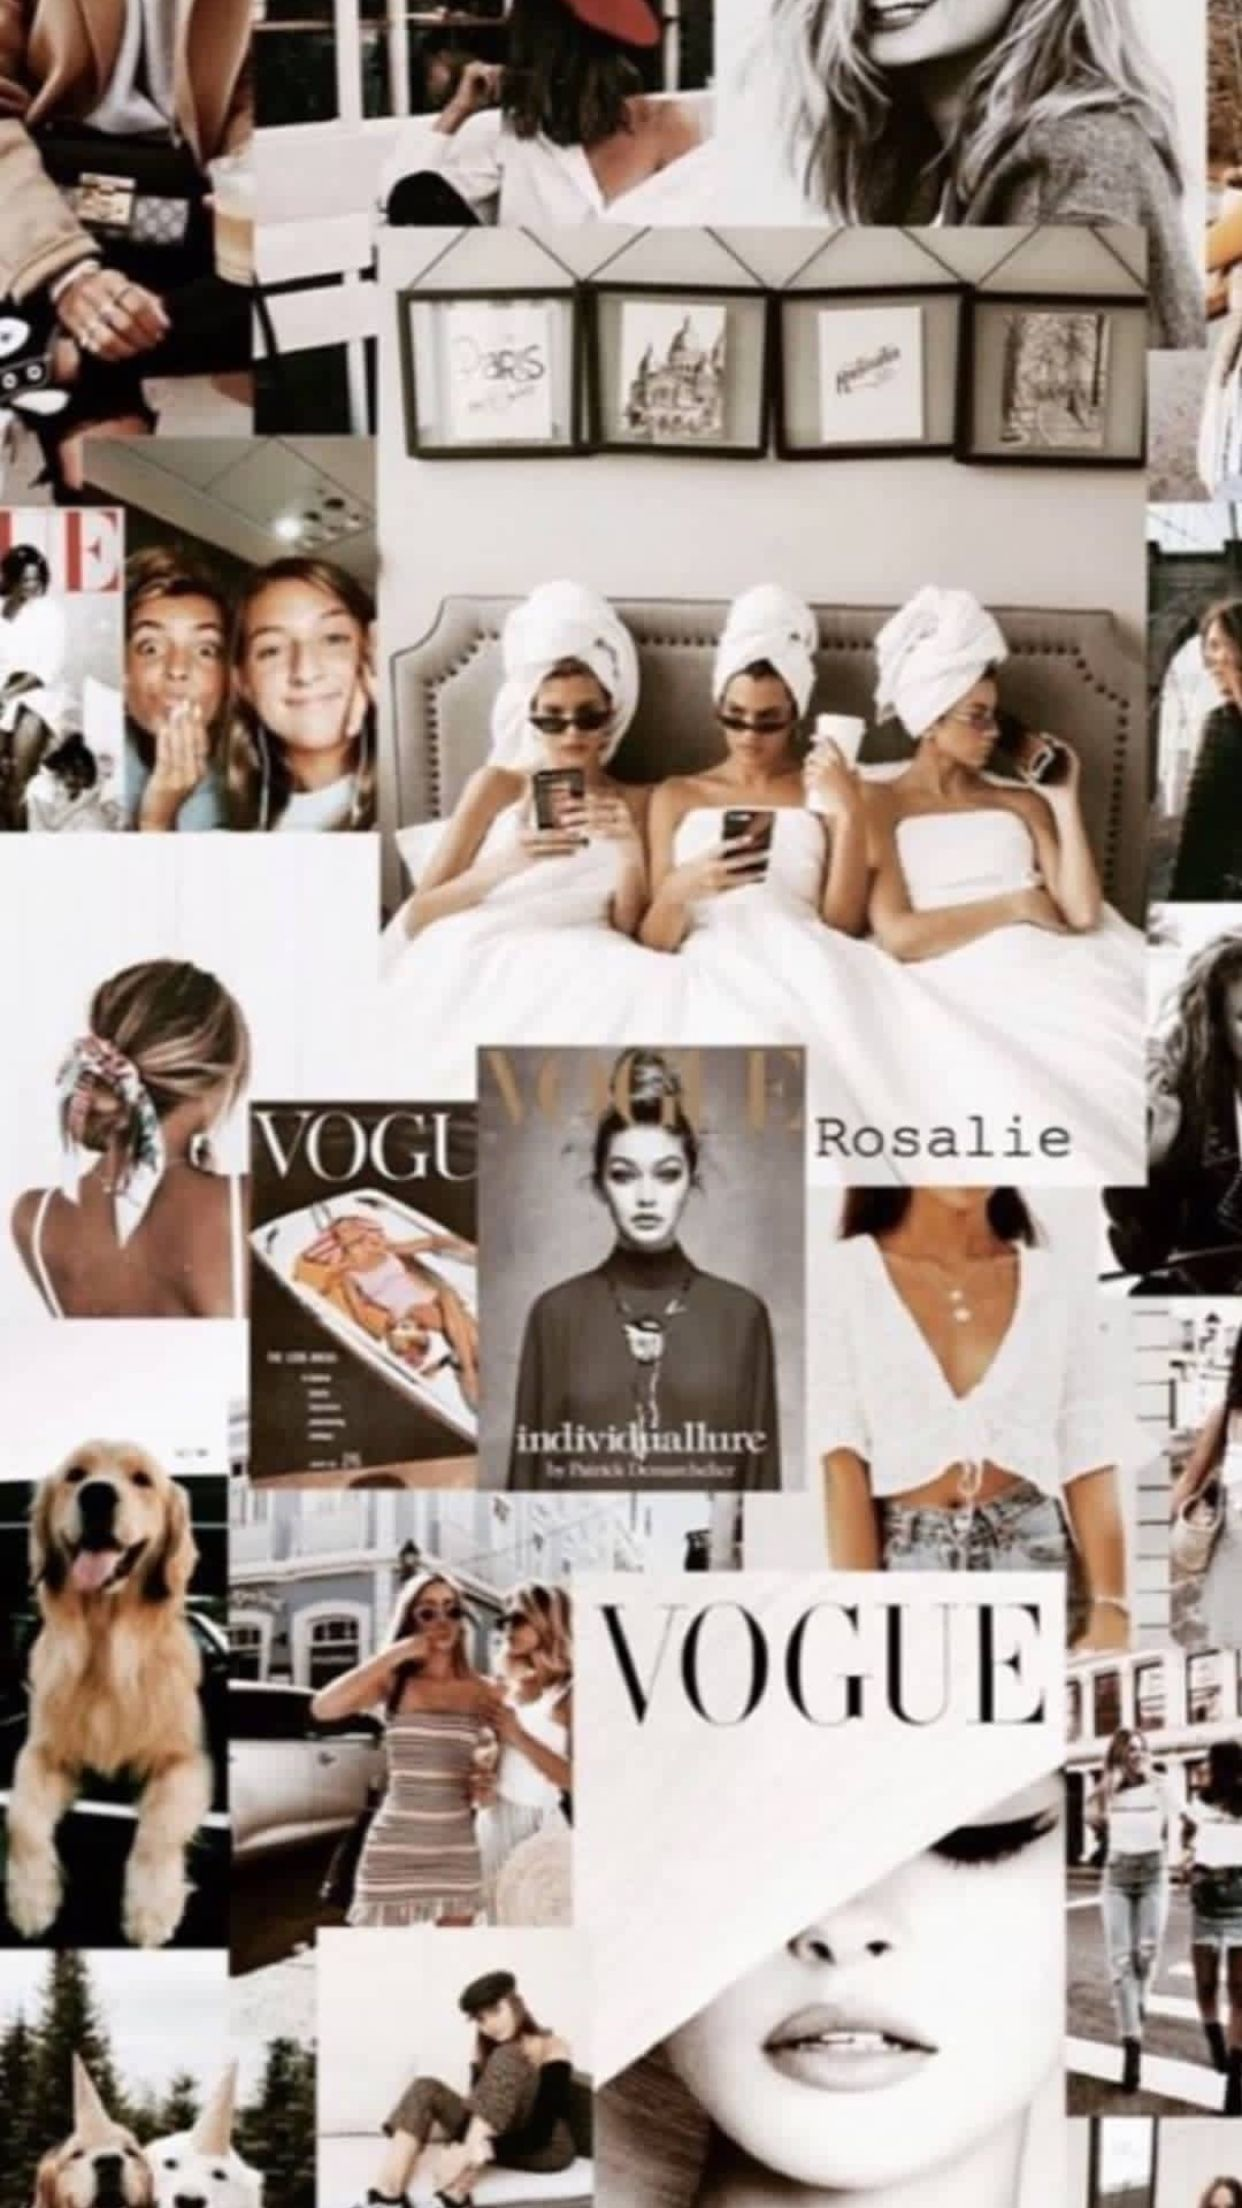 Wallpapers Vogue Aesthetic Iphone Wallpaper Vintage Vogue Wallpaper Fashion Wallpaper